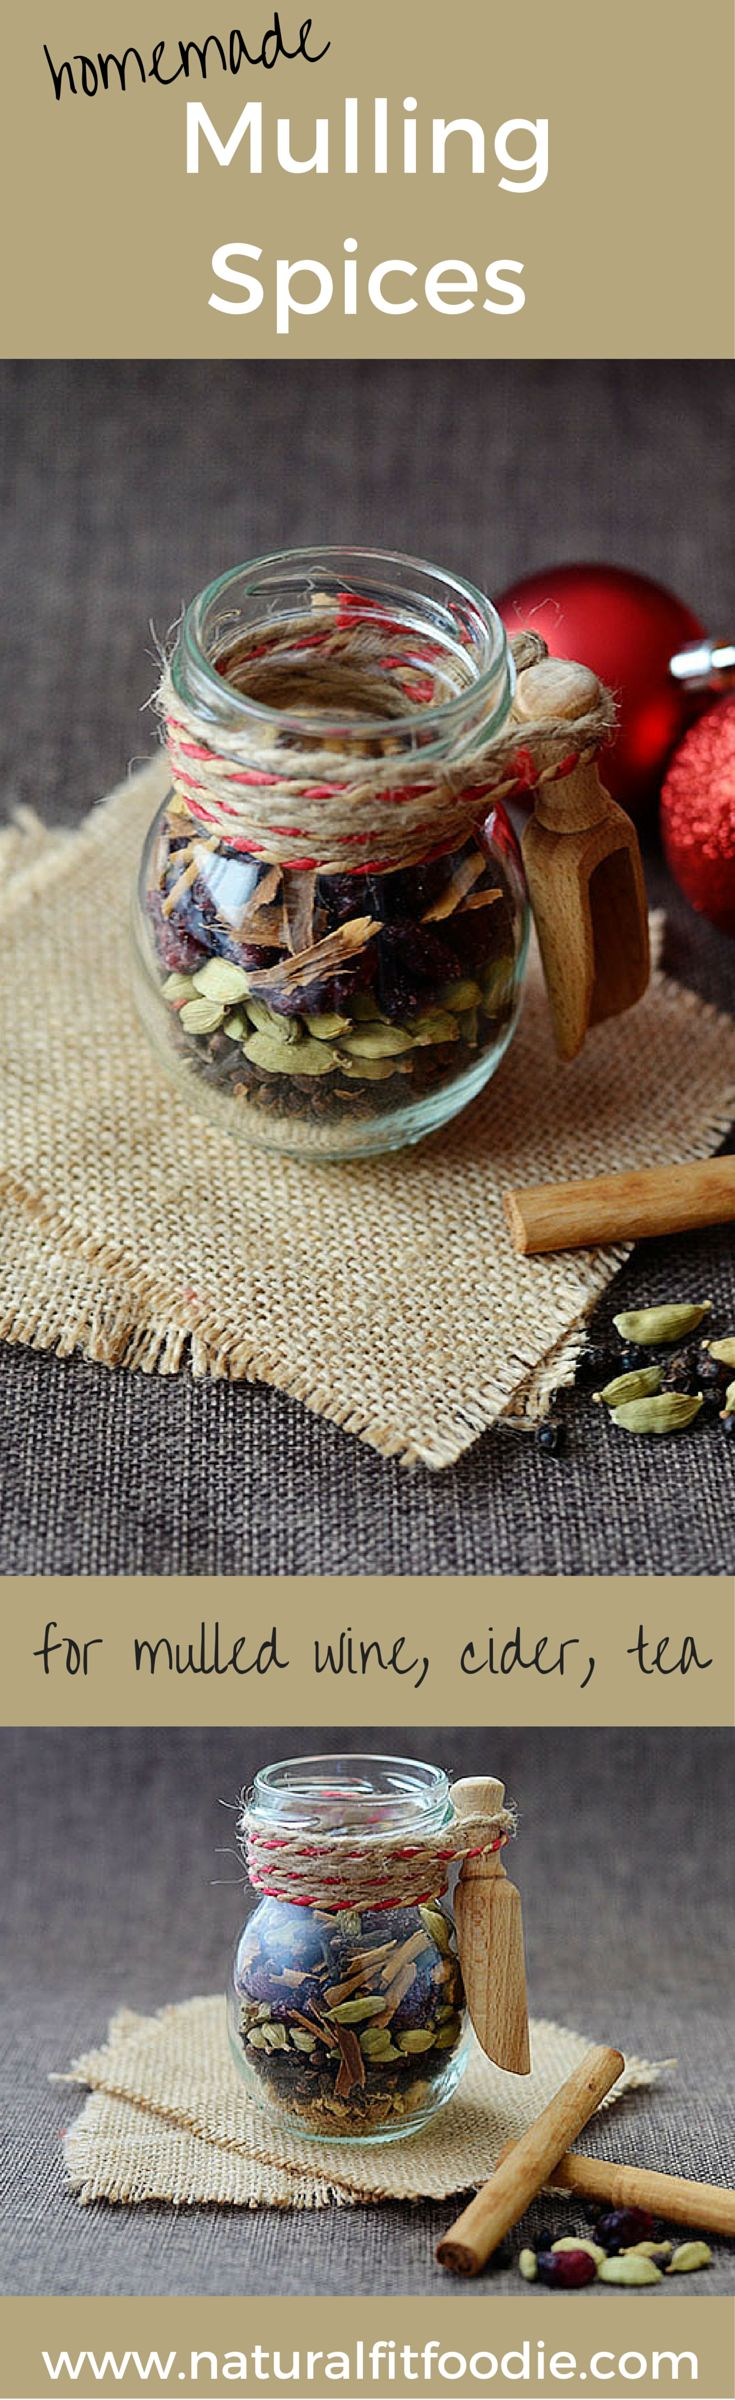 Homemade Mulling Spices - Mix your own mulling spices and perk up all your holiday beverages; mulled wine, mulled cider, tea and more. Makes the most beautiful holiday foodie gift too!